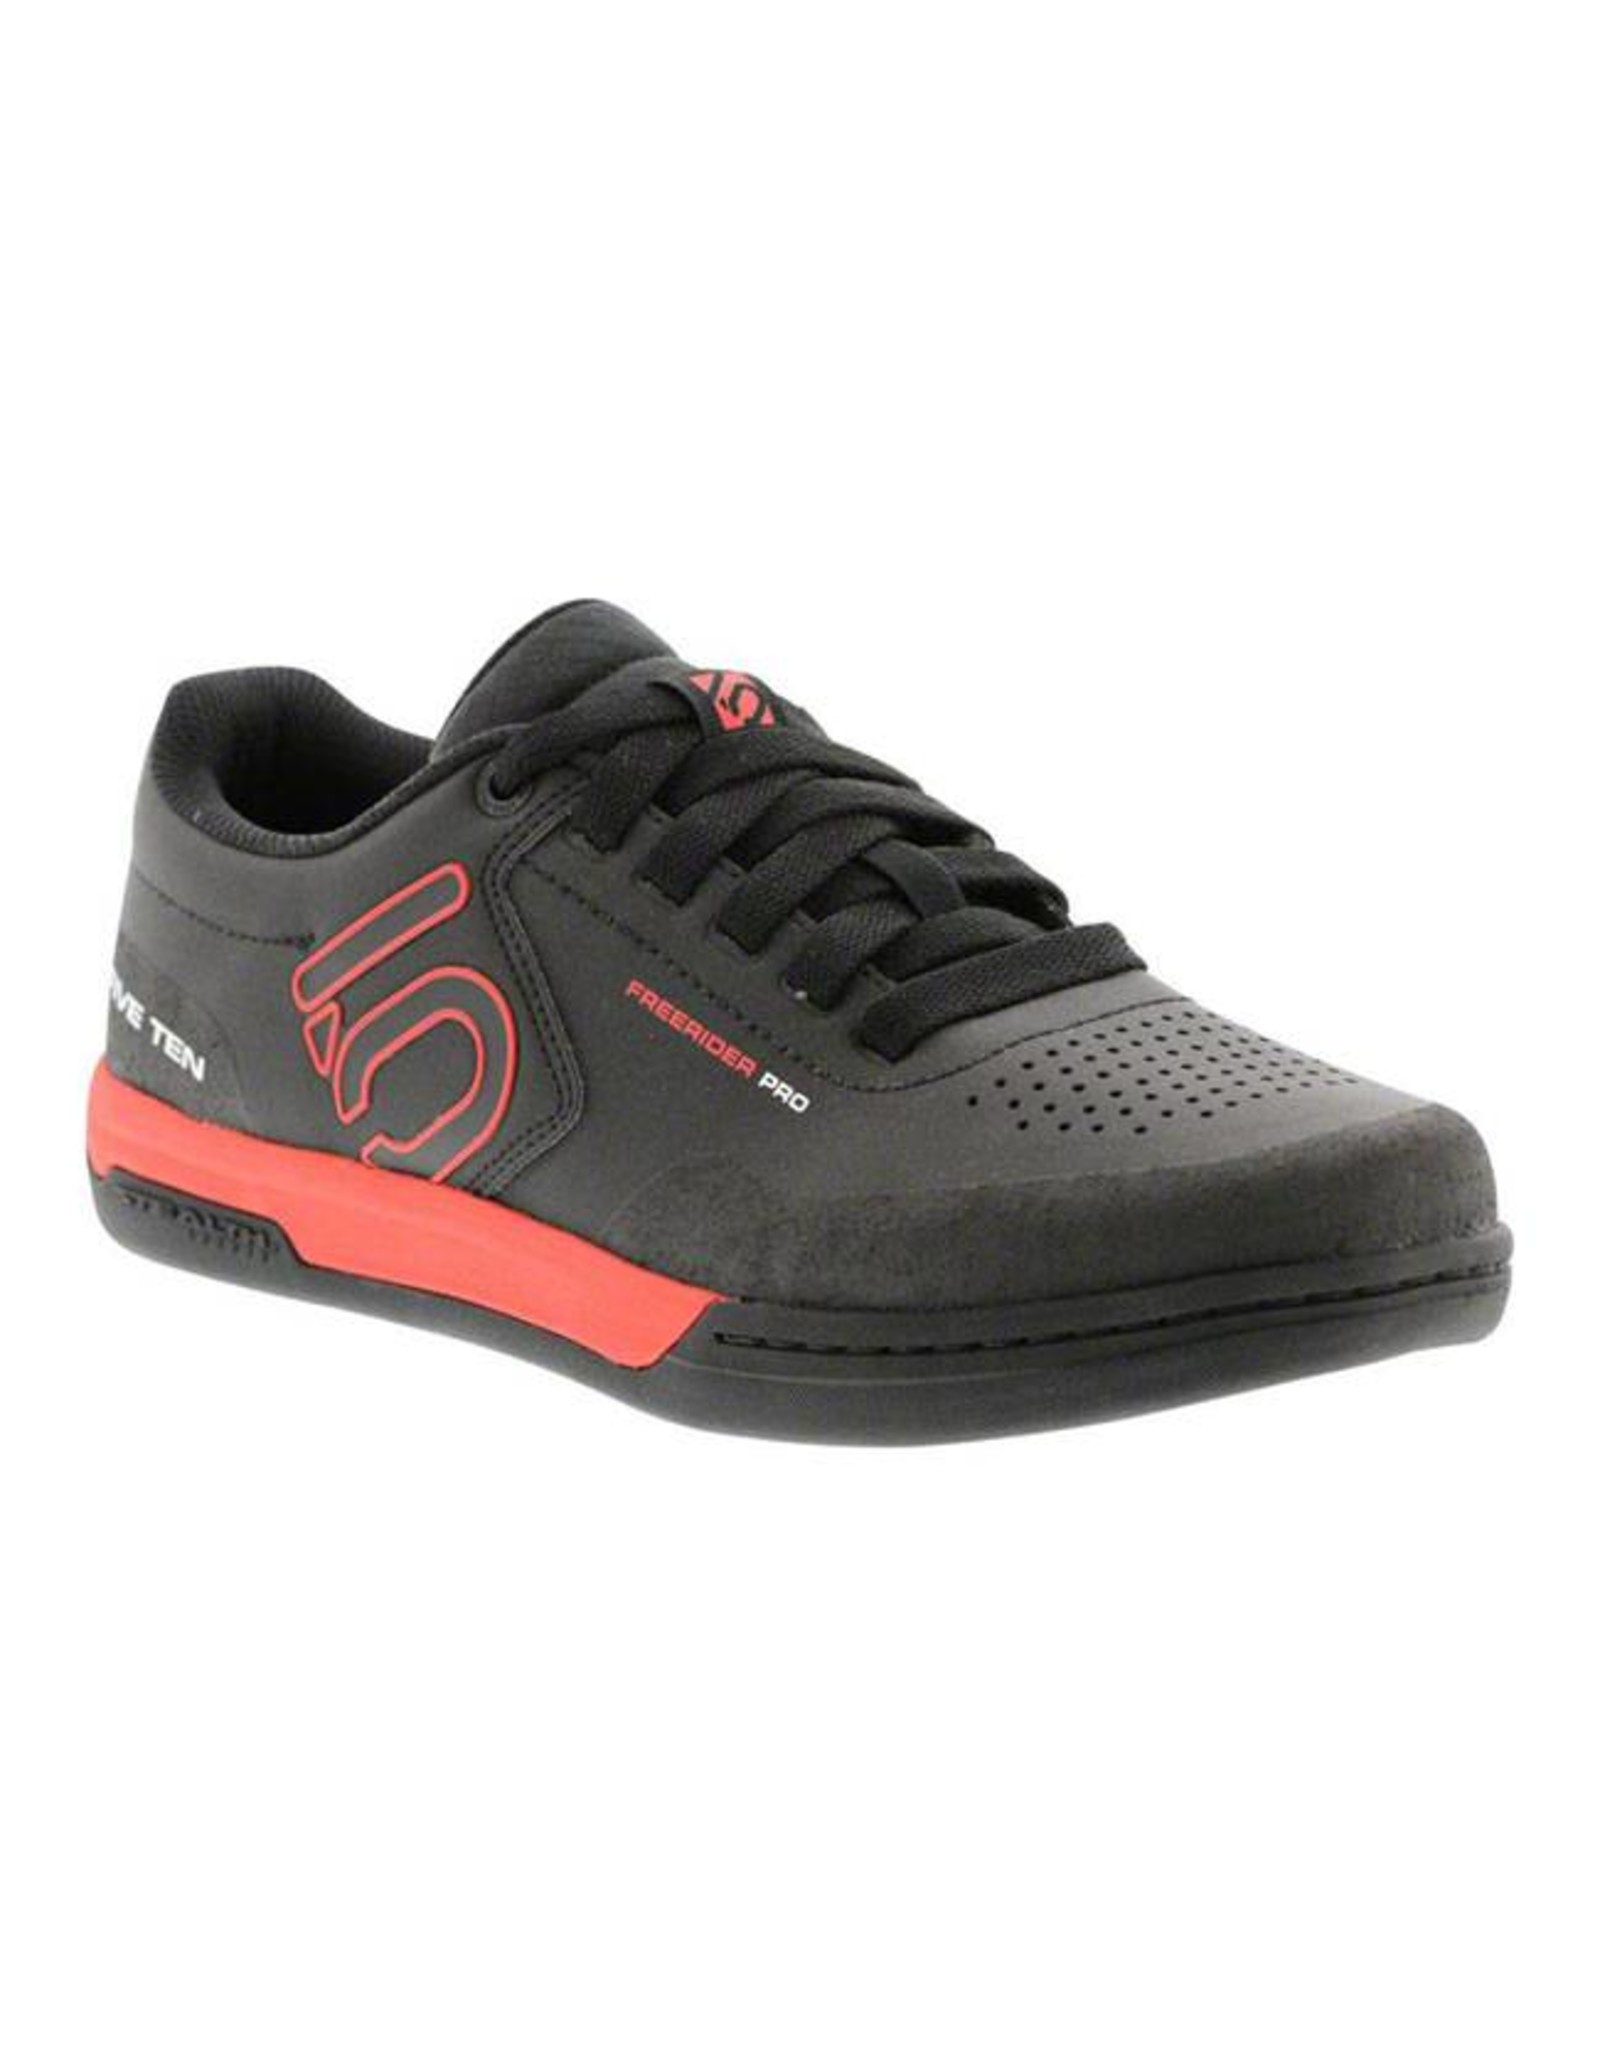 Five Ten Five Ten Freerider Pro Men's Flat Pedal Shoe: Black 9.5